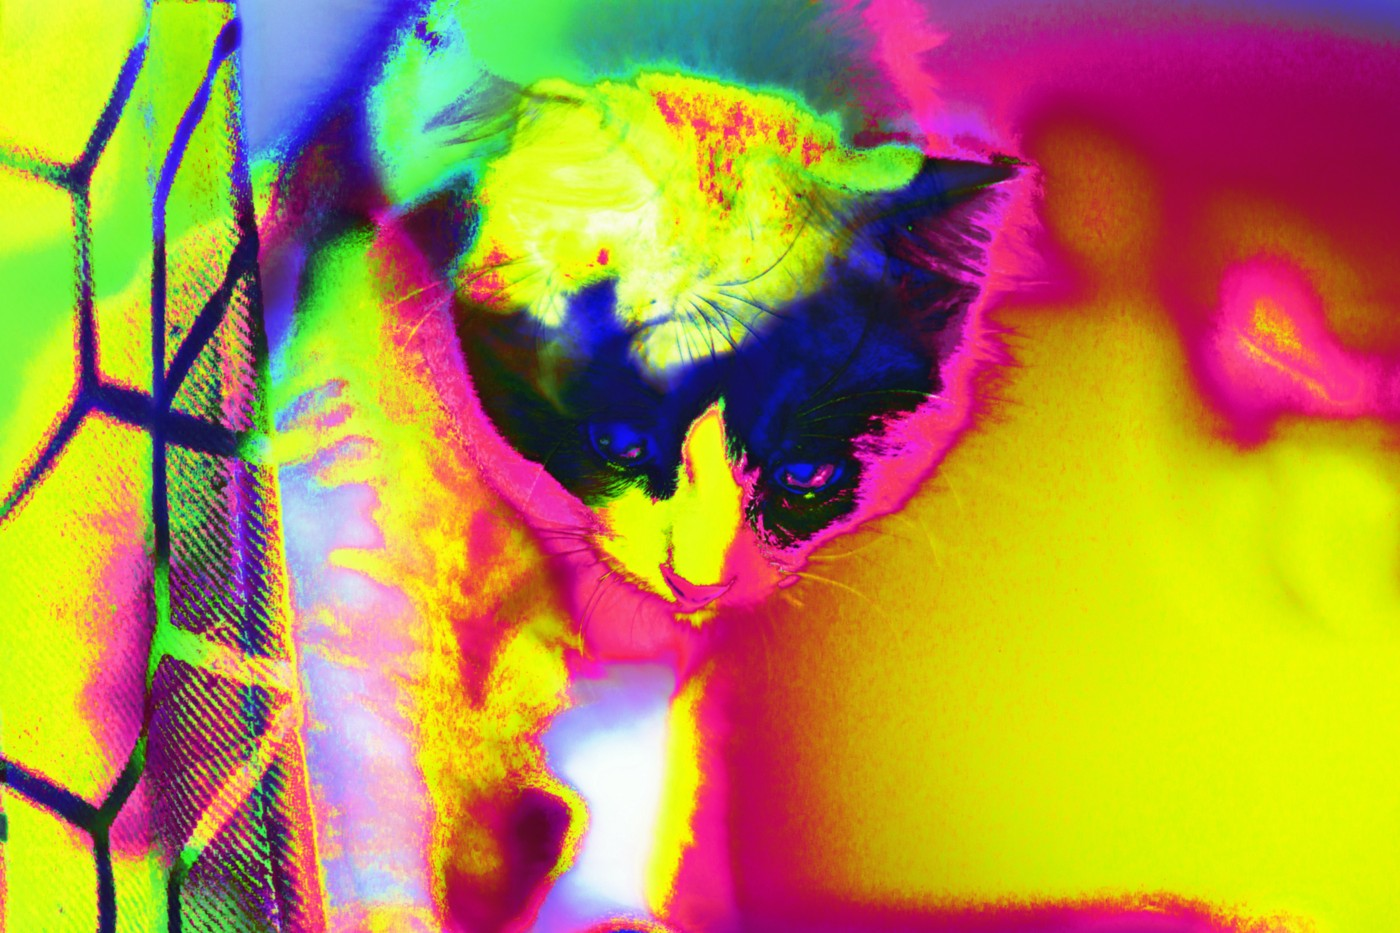 Kitten pop art, vibrant colors.